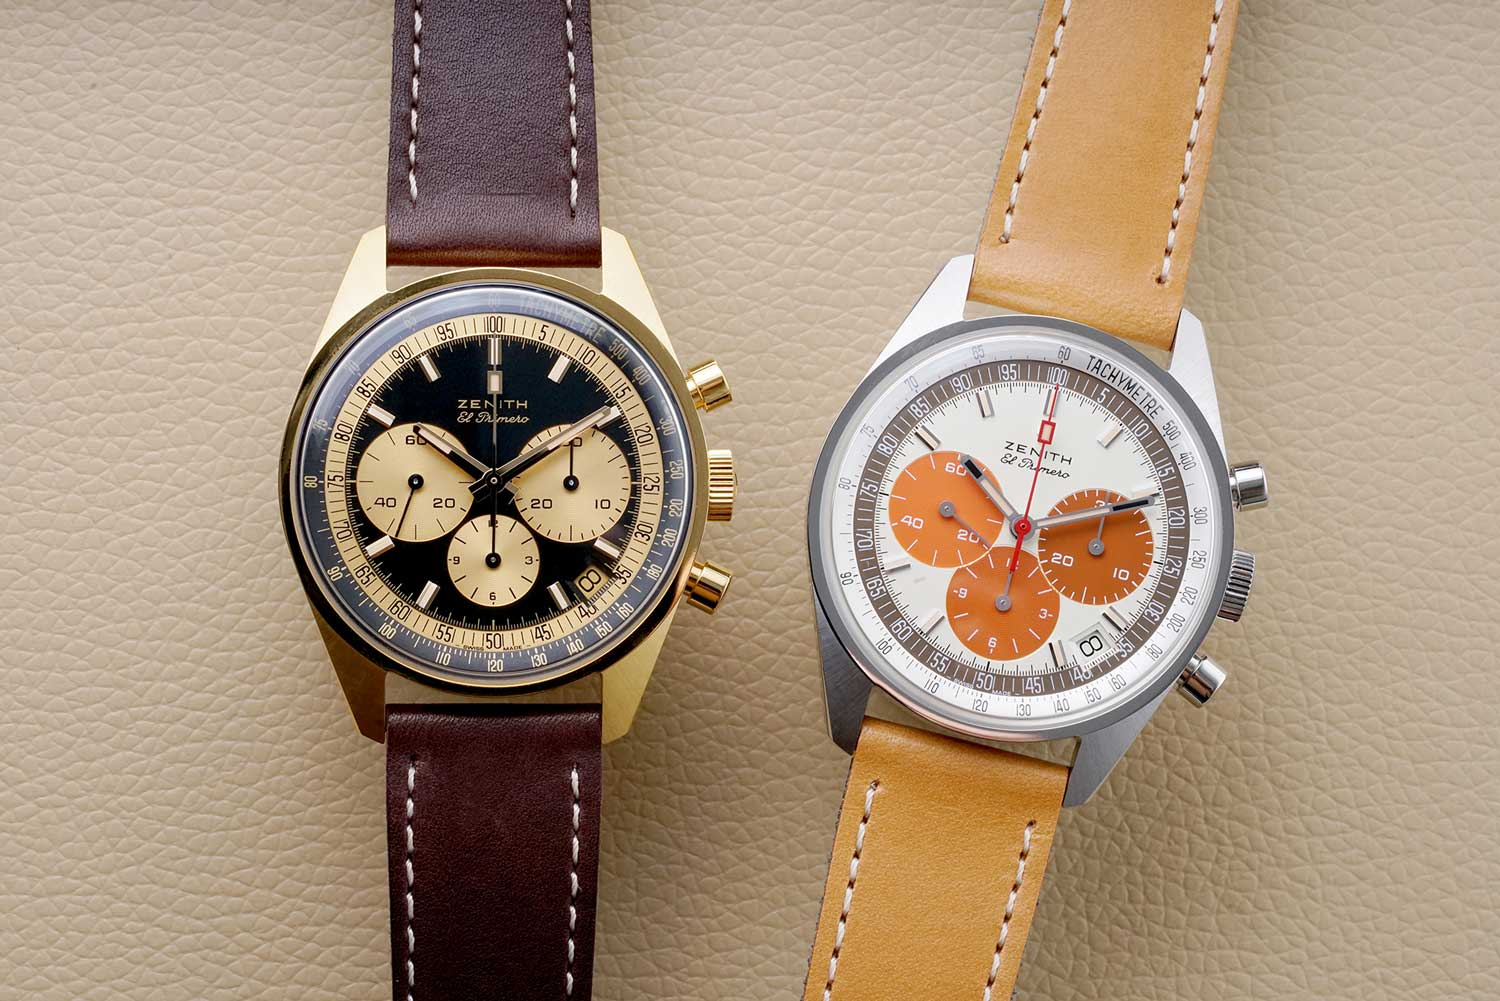 El Primero A386 Revival – Yellow Gold and Steel (Image: Phillips Watches)